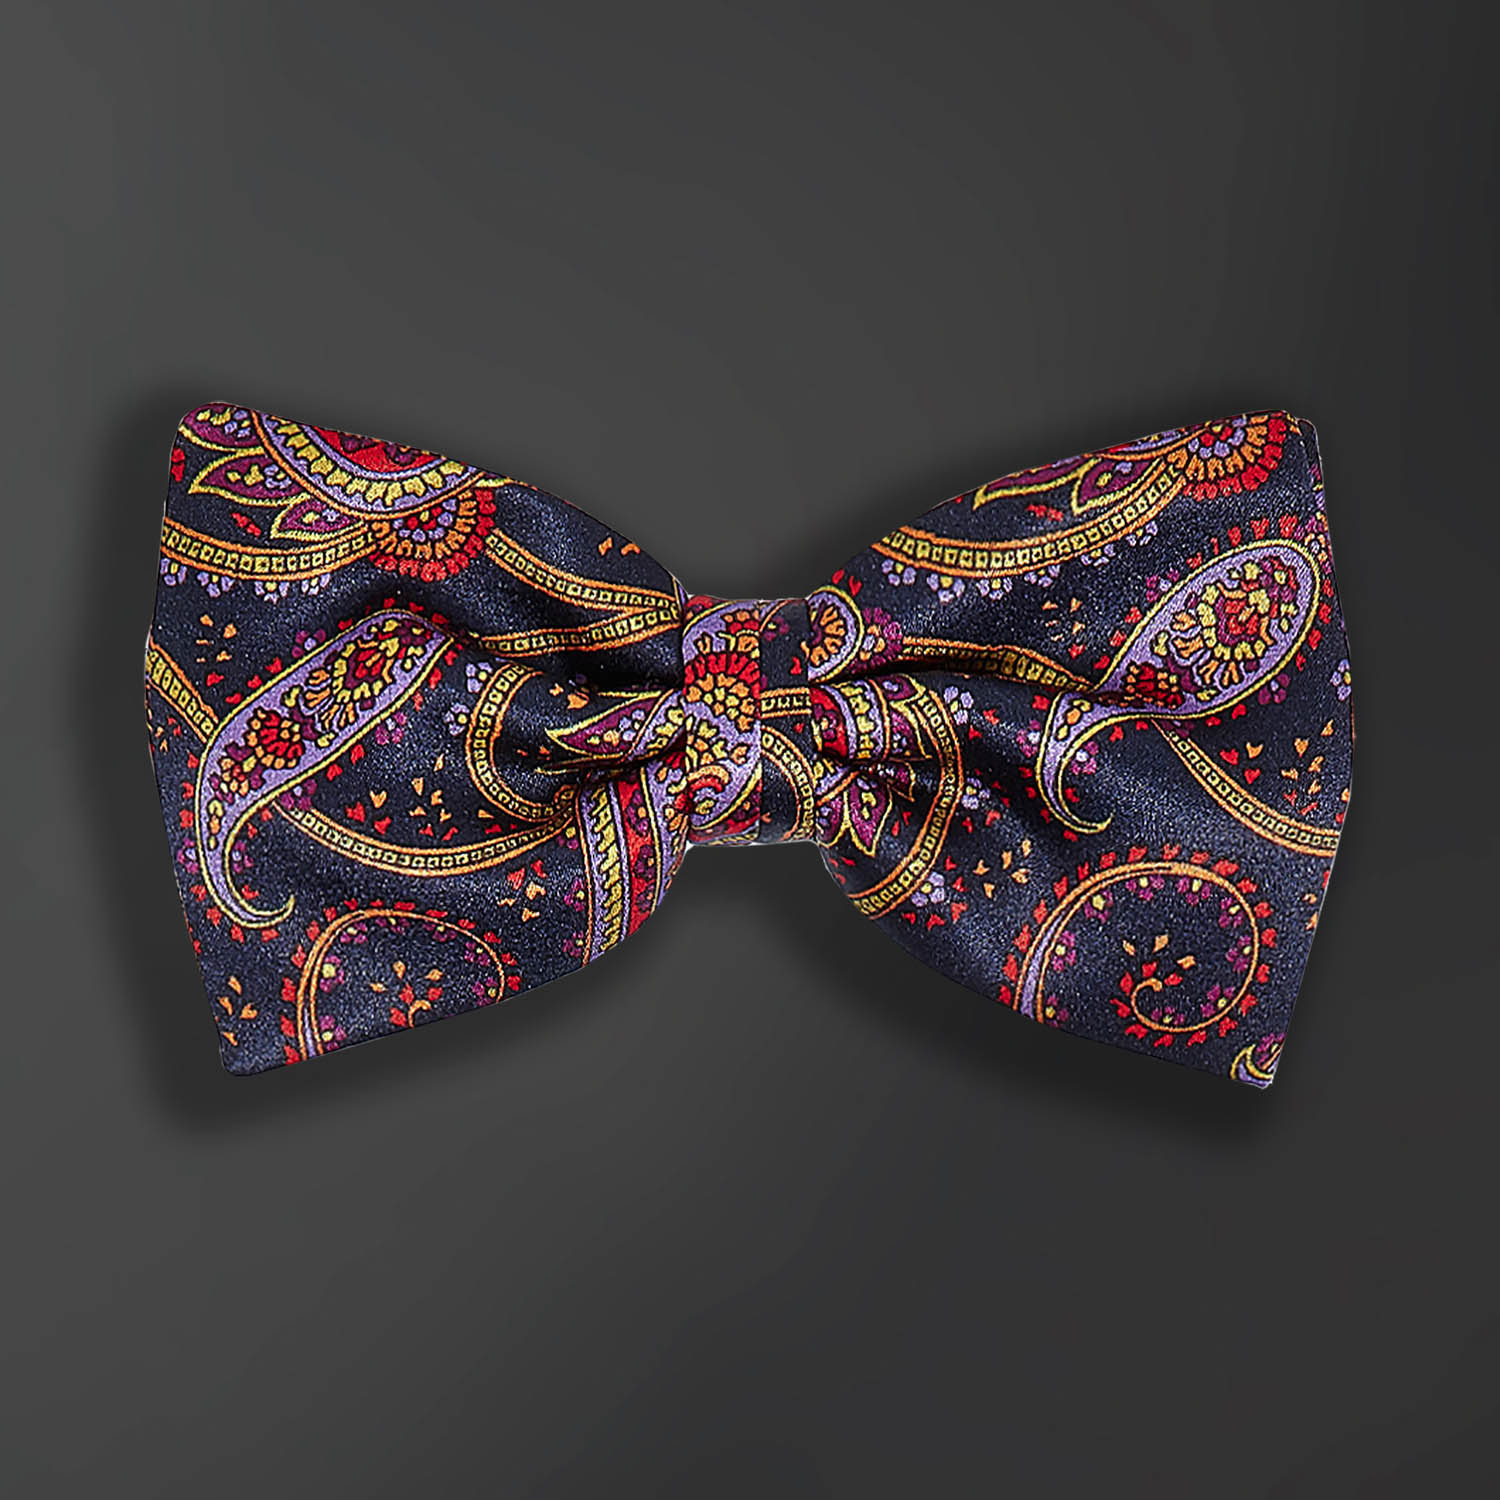 Bow tie on display